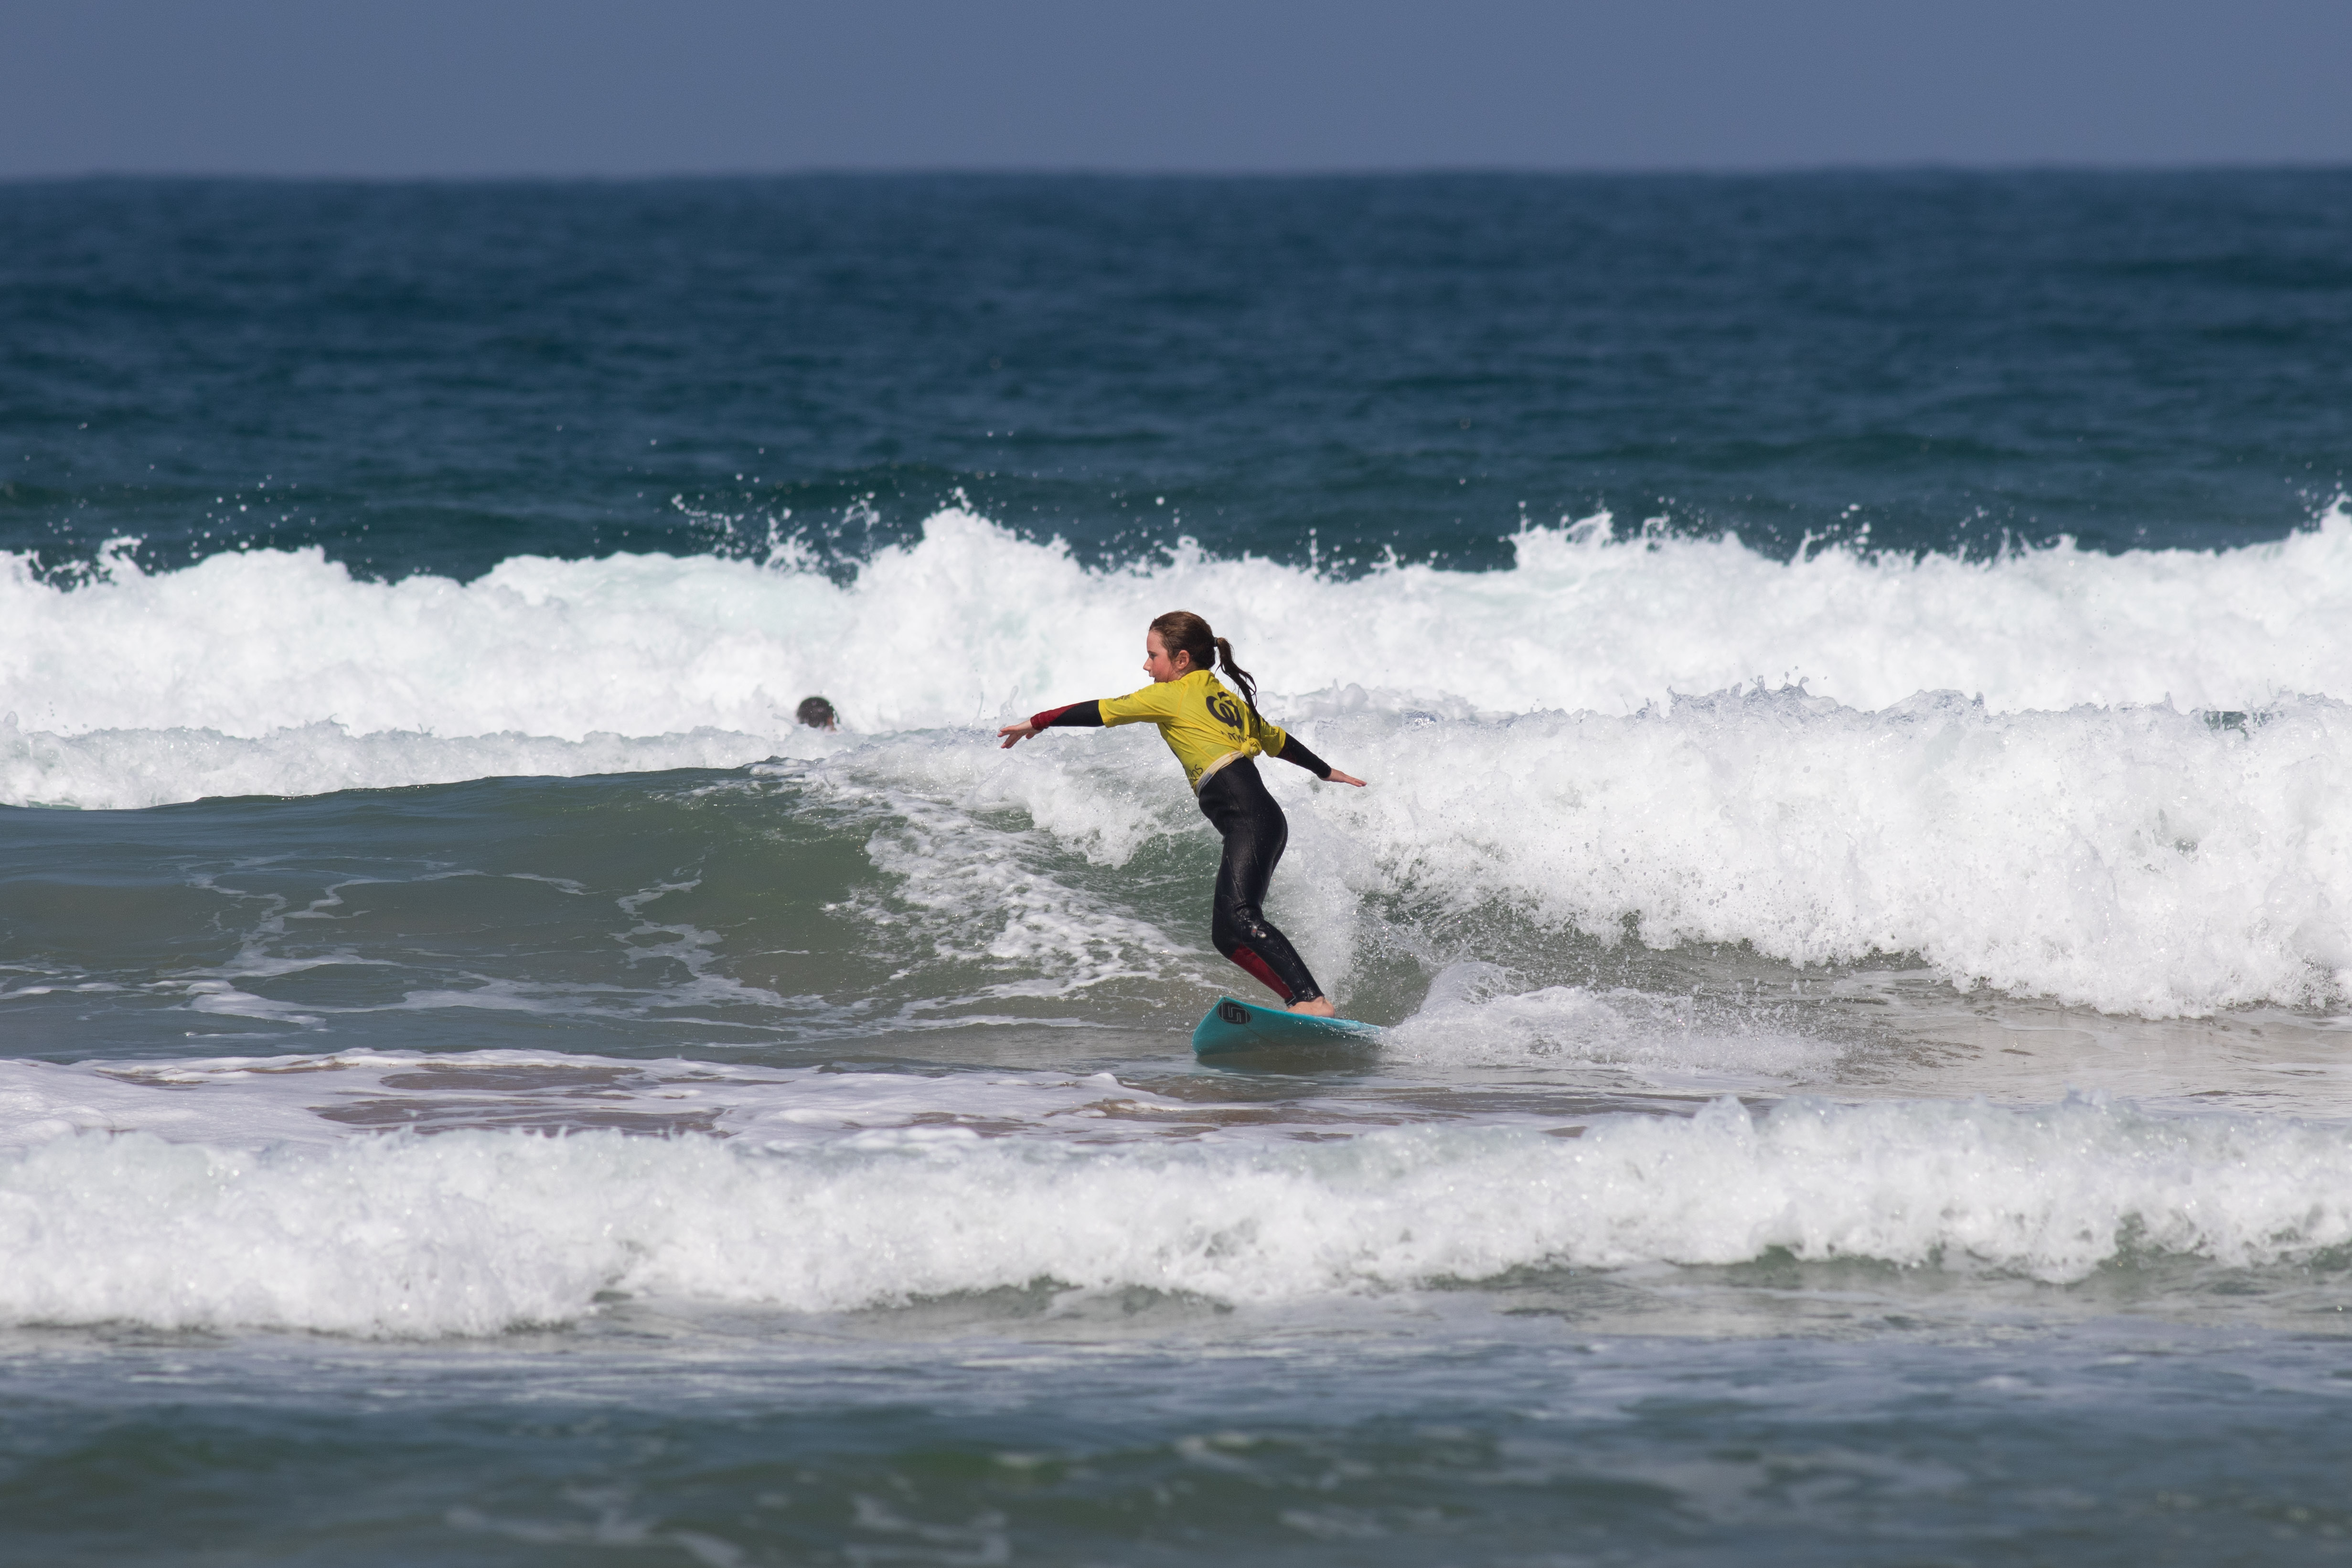 Lillian Basses Woolworths Surfer Grom Comp2019 Zl 013